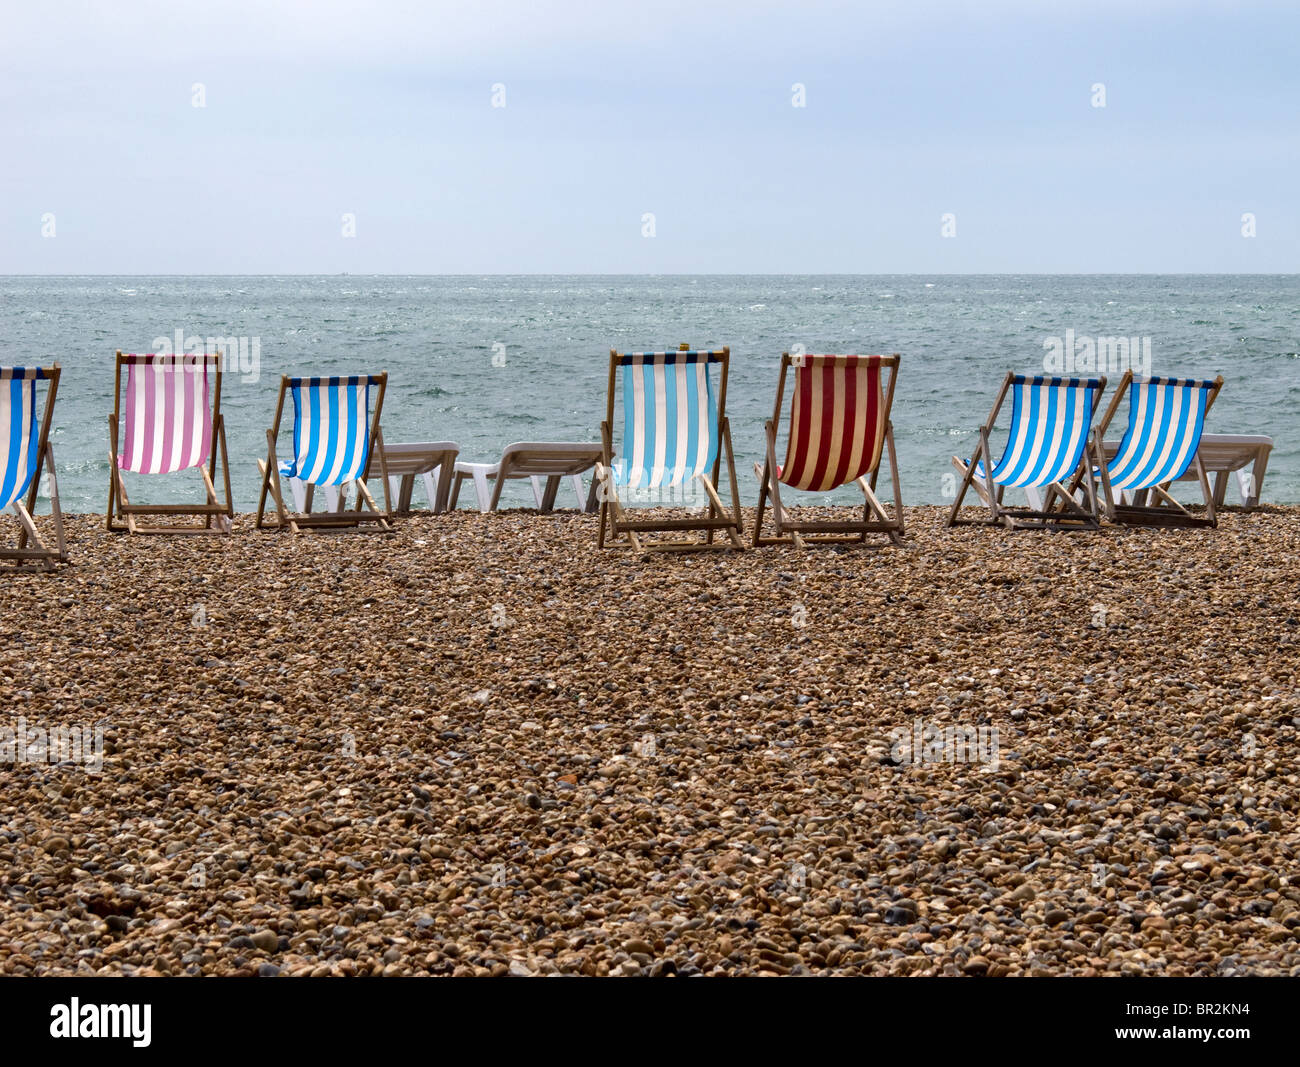 Empty deckchairs on a deserted pebble beach-1 - Stock Image